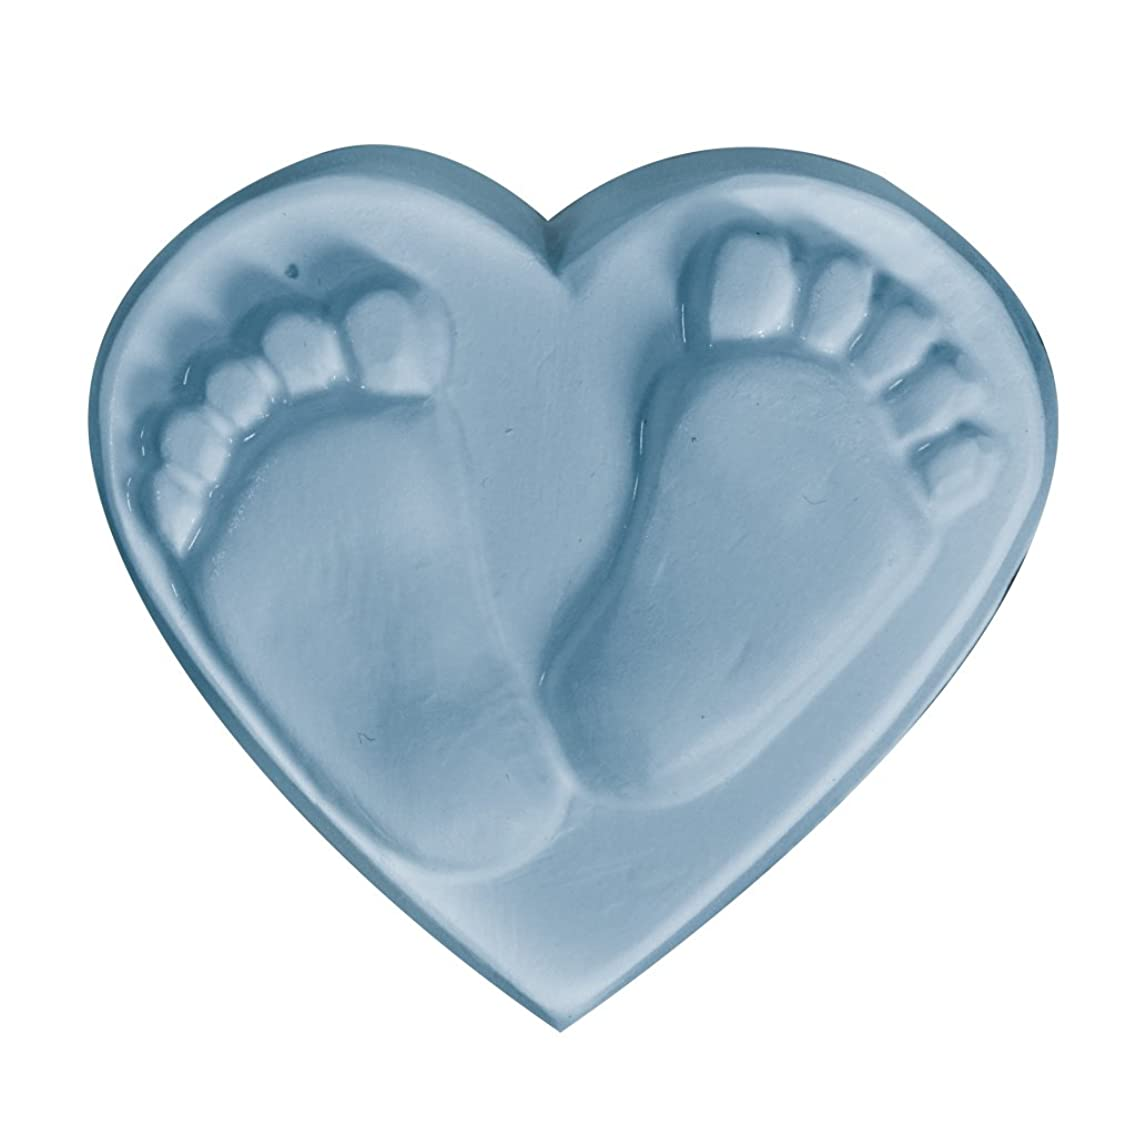 Milky Way - Baby Feet Heart Soap Mold Tray - Melt and Pour - Cold Process - Clear PVC - Not Silicone - MW 465